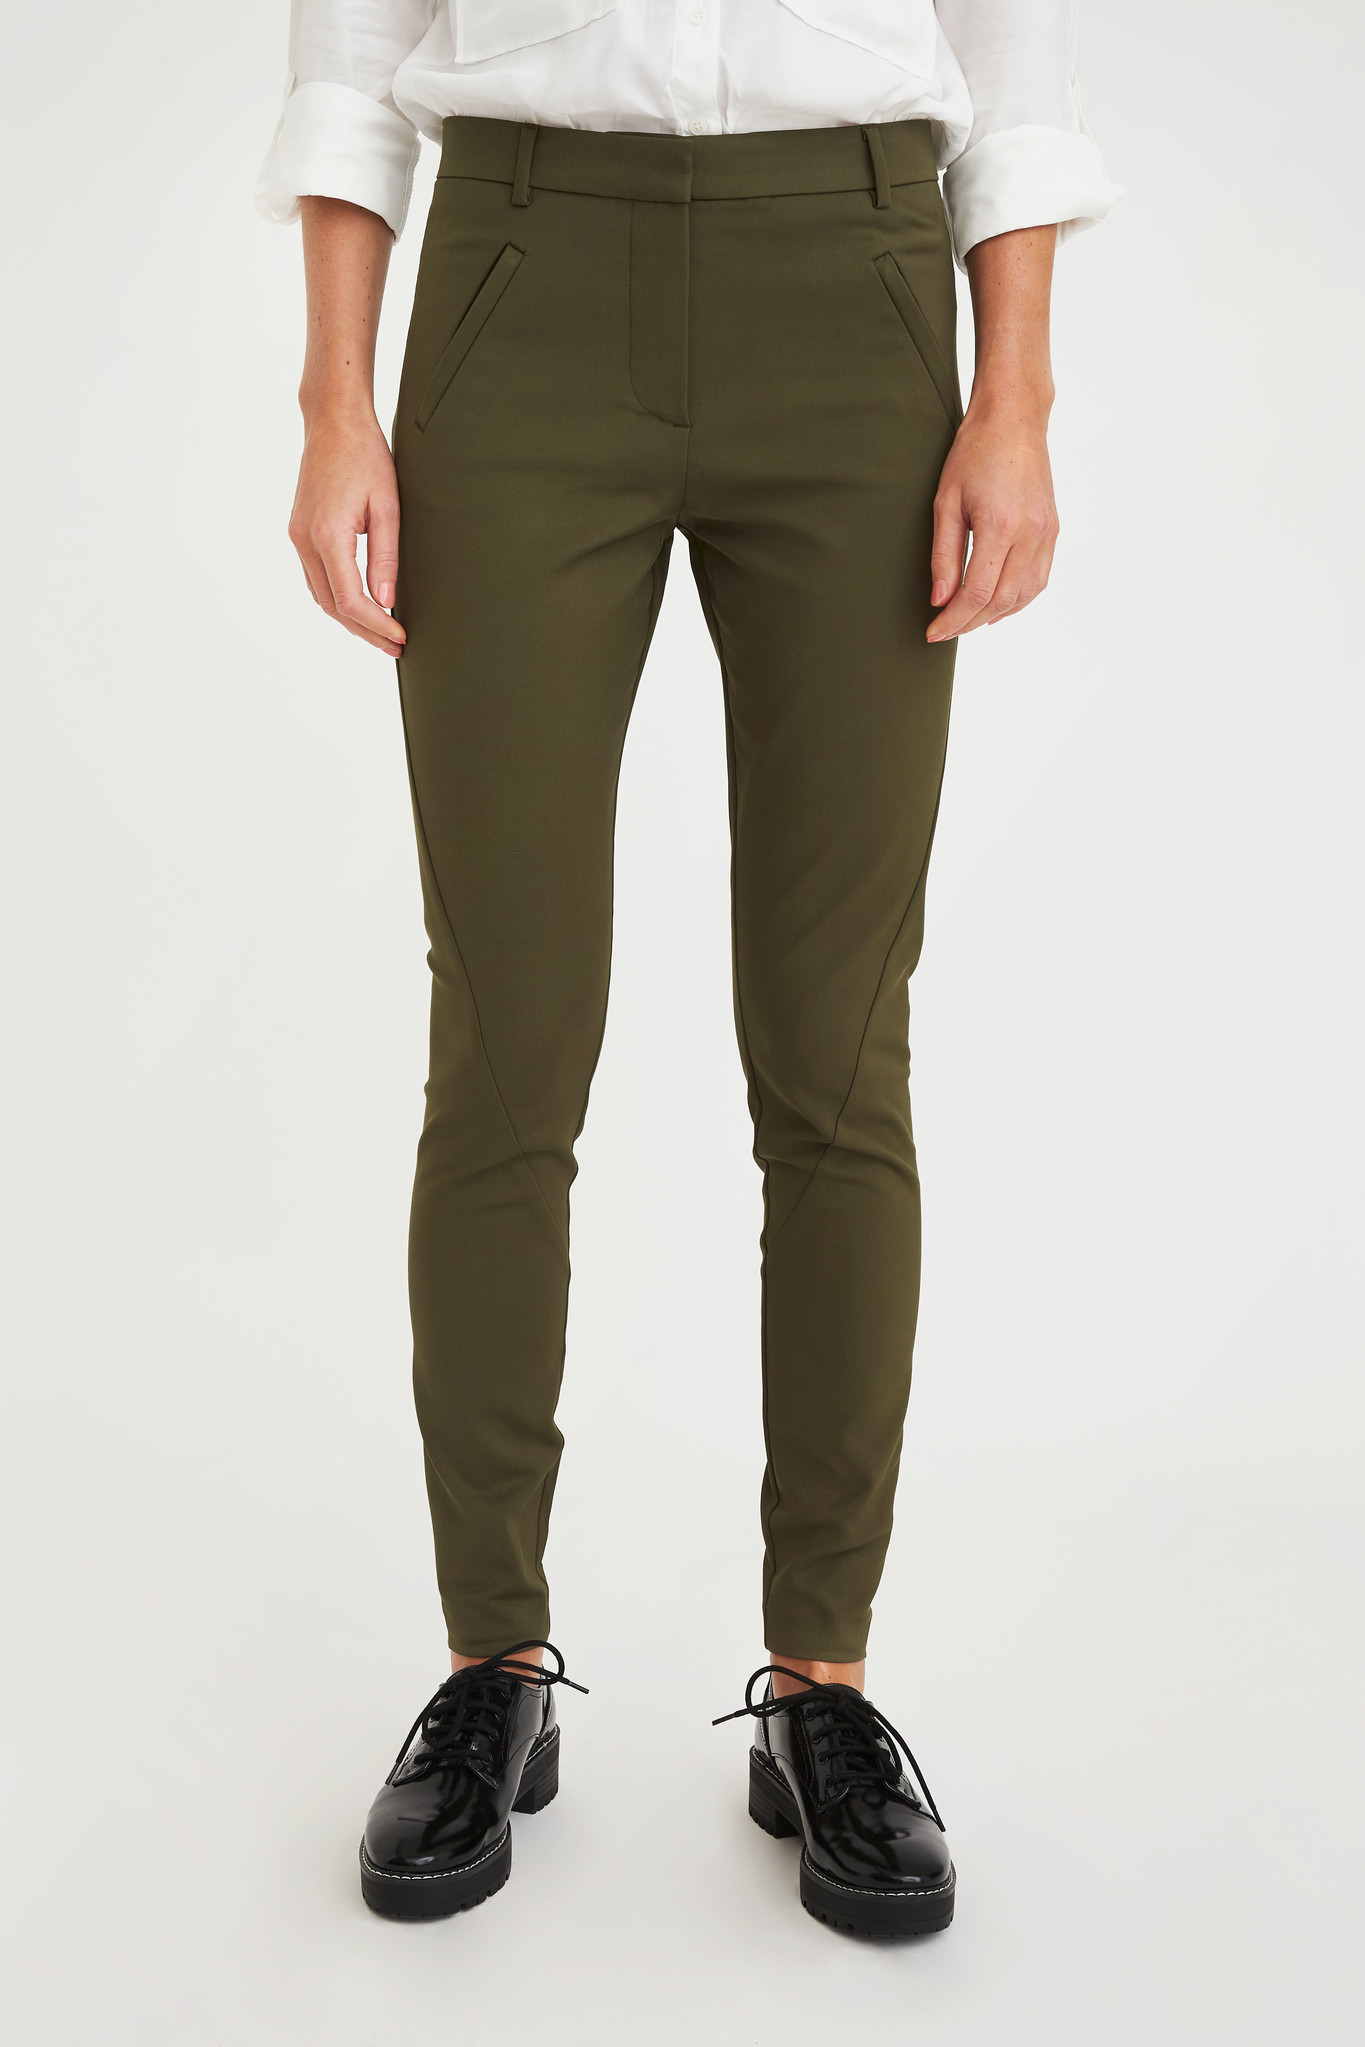 Angelie Pants - Army Jeggin-2